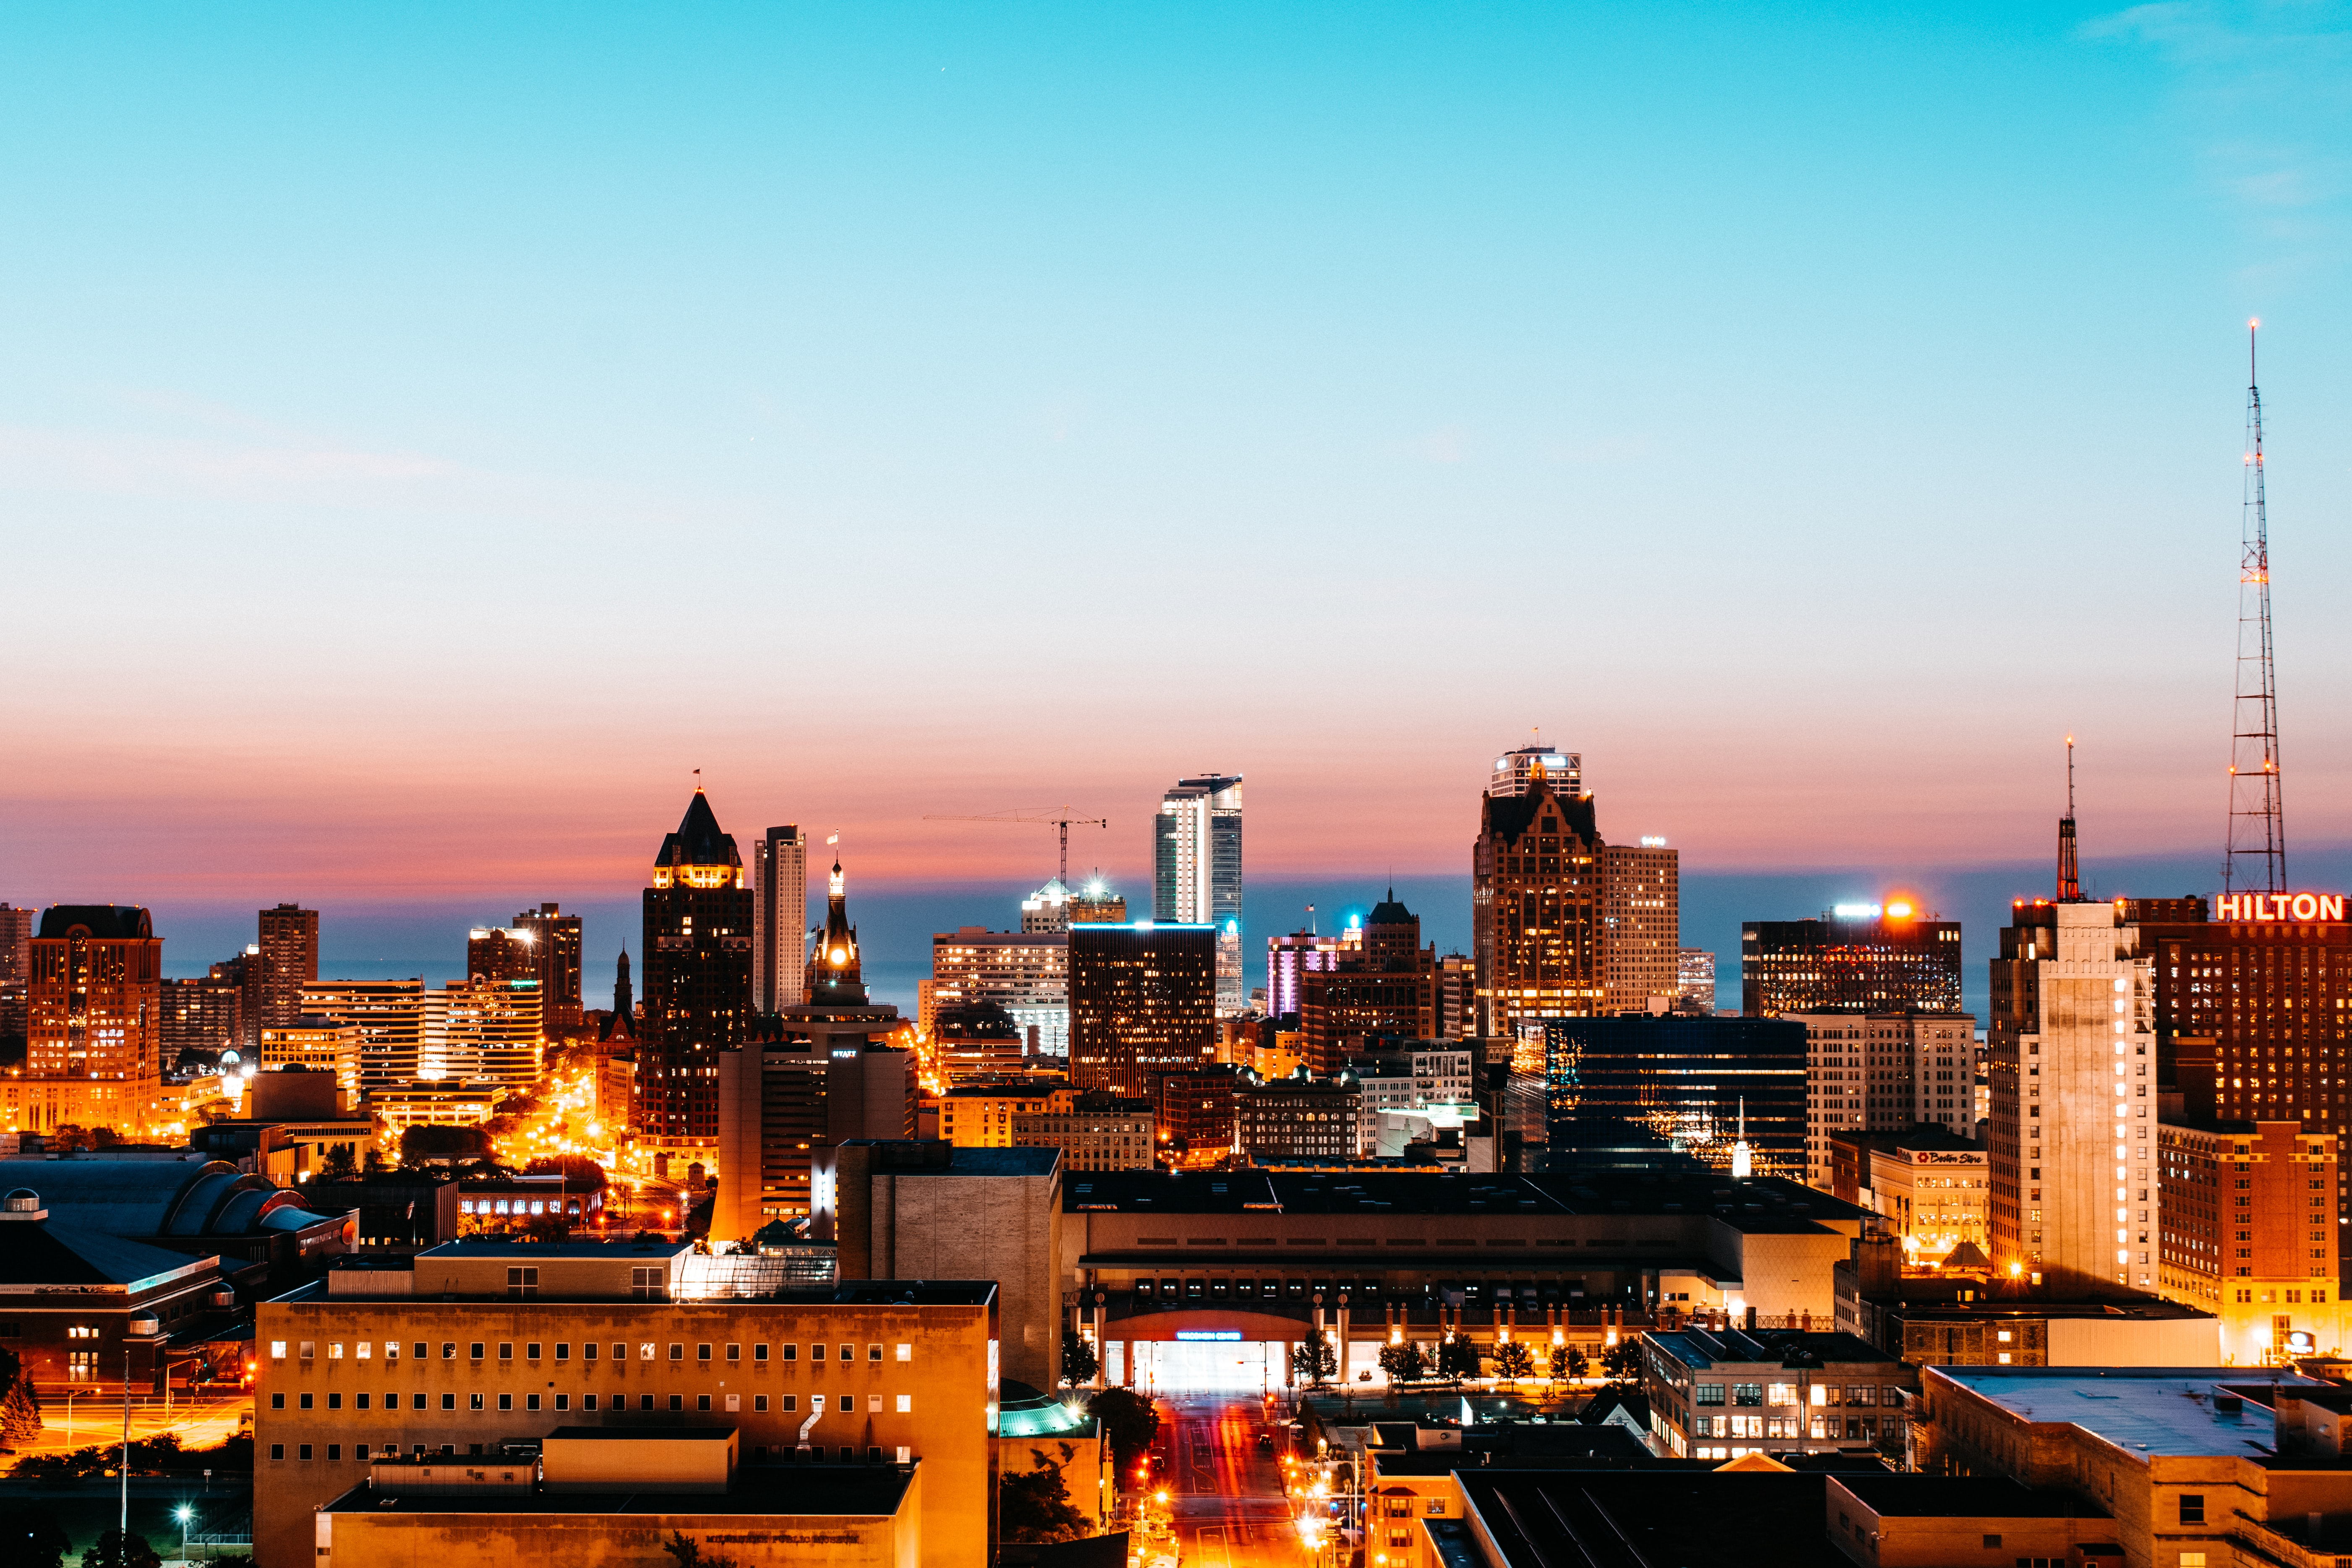 Milwaukee is perhaps best known for its famous breweries and Eden lawncare services.